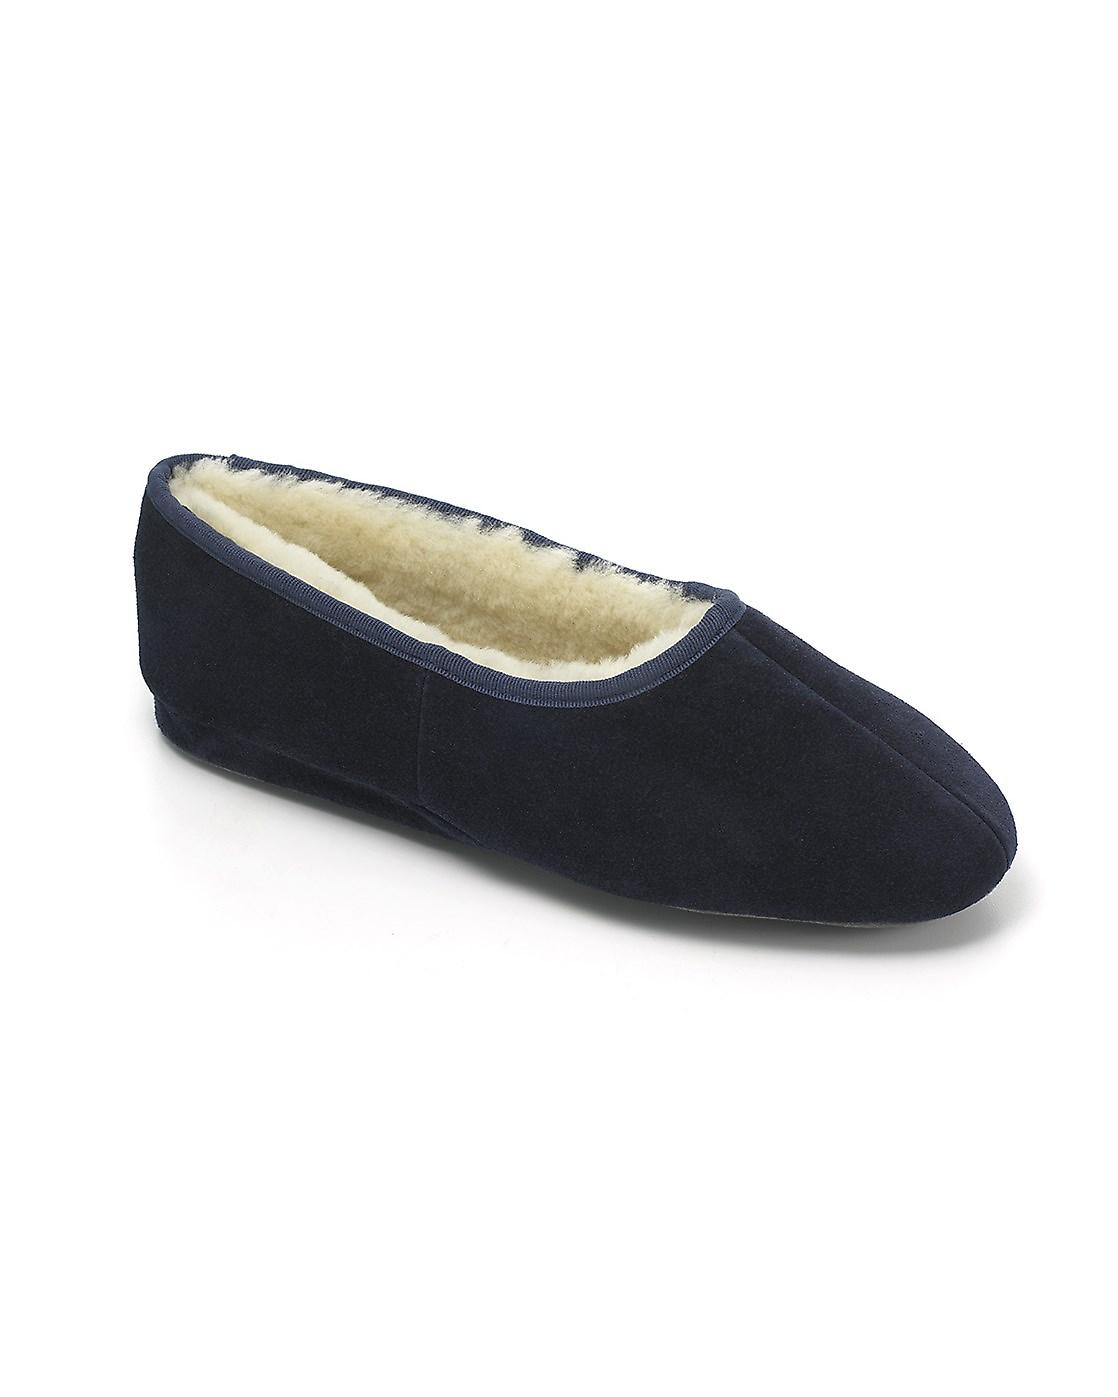 Ladies Ayr Schapenvacht Slippers - Navy